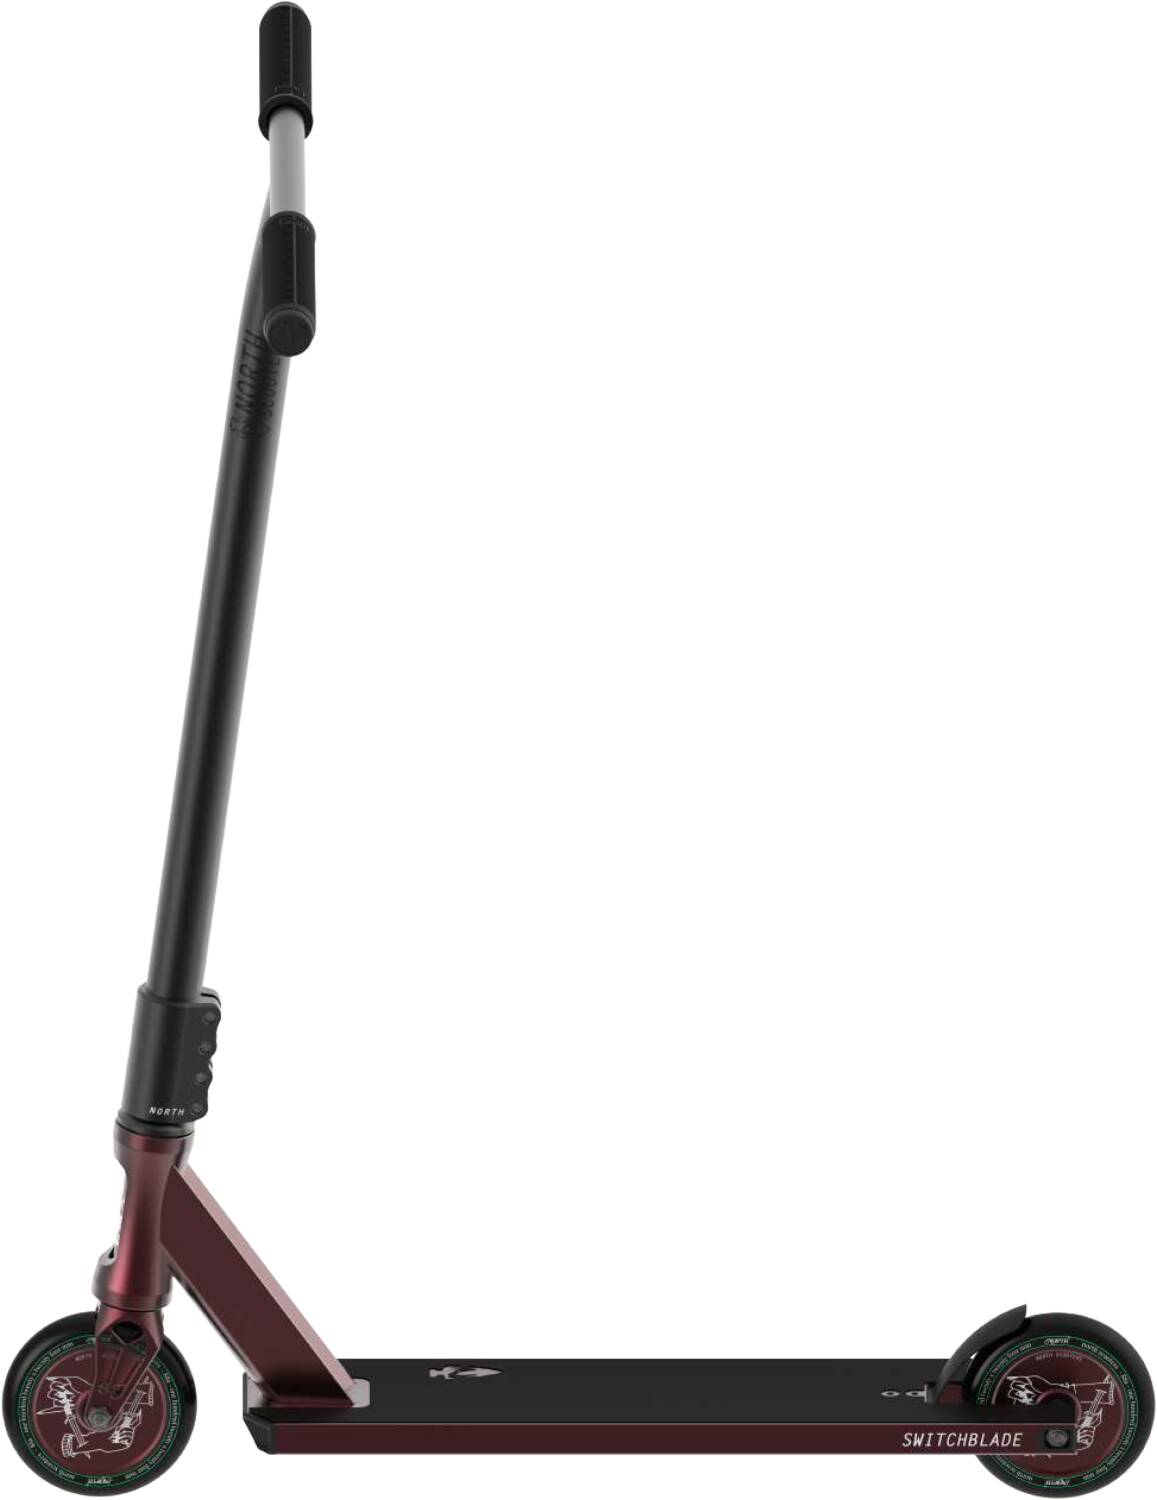 Трюковой самокат North Switchblade 2020 Pro Scooter (Wine Red & Black)